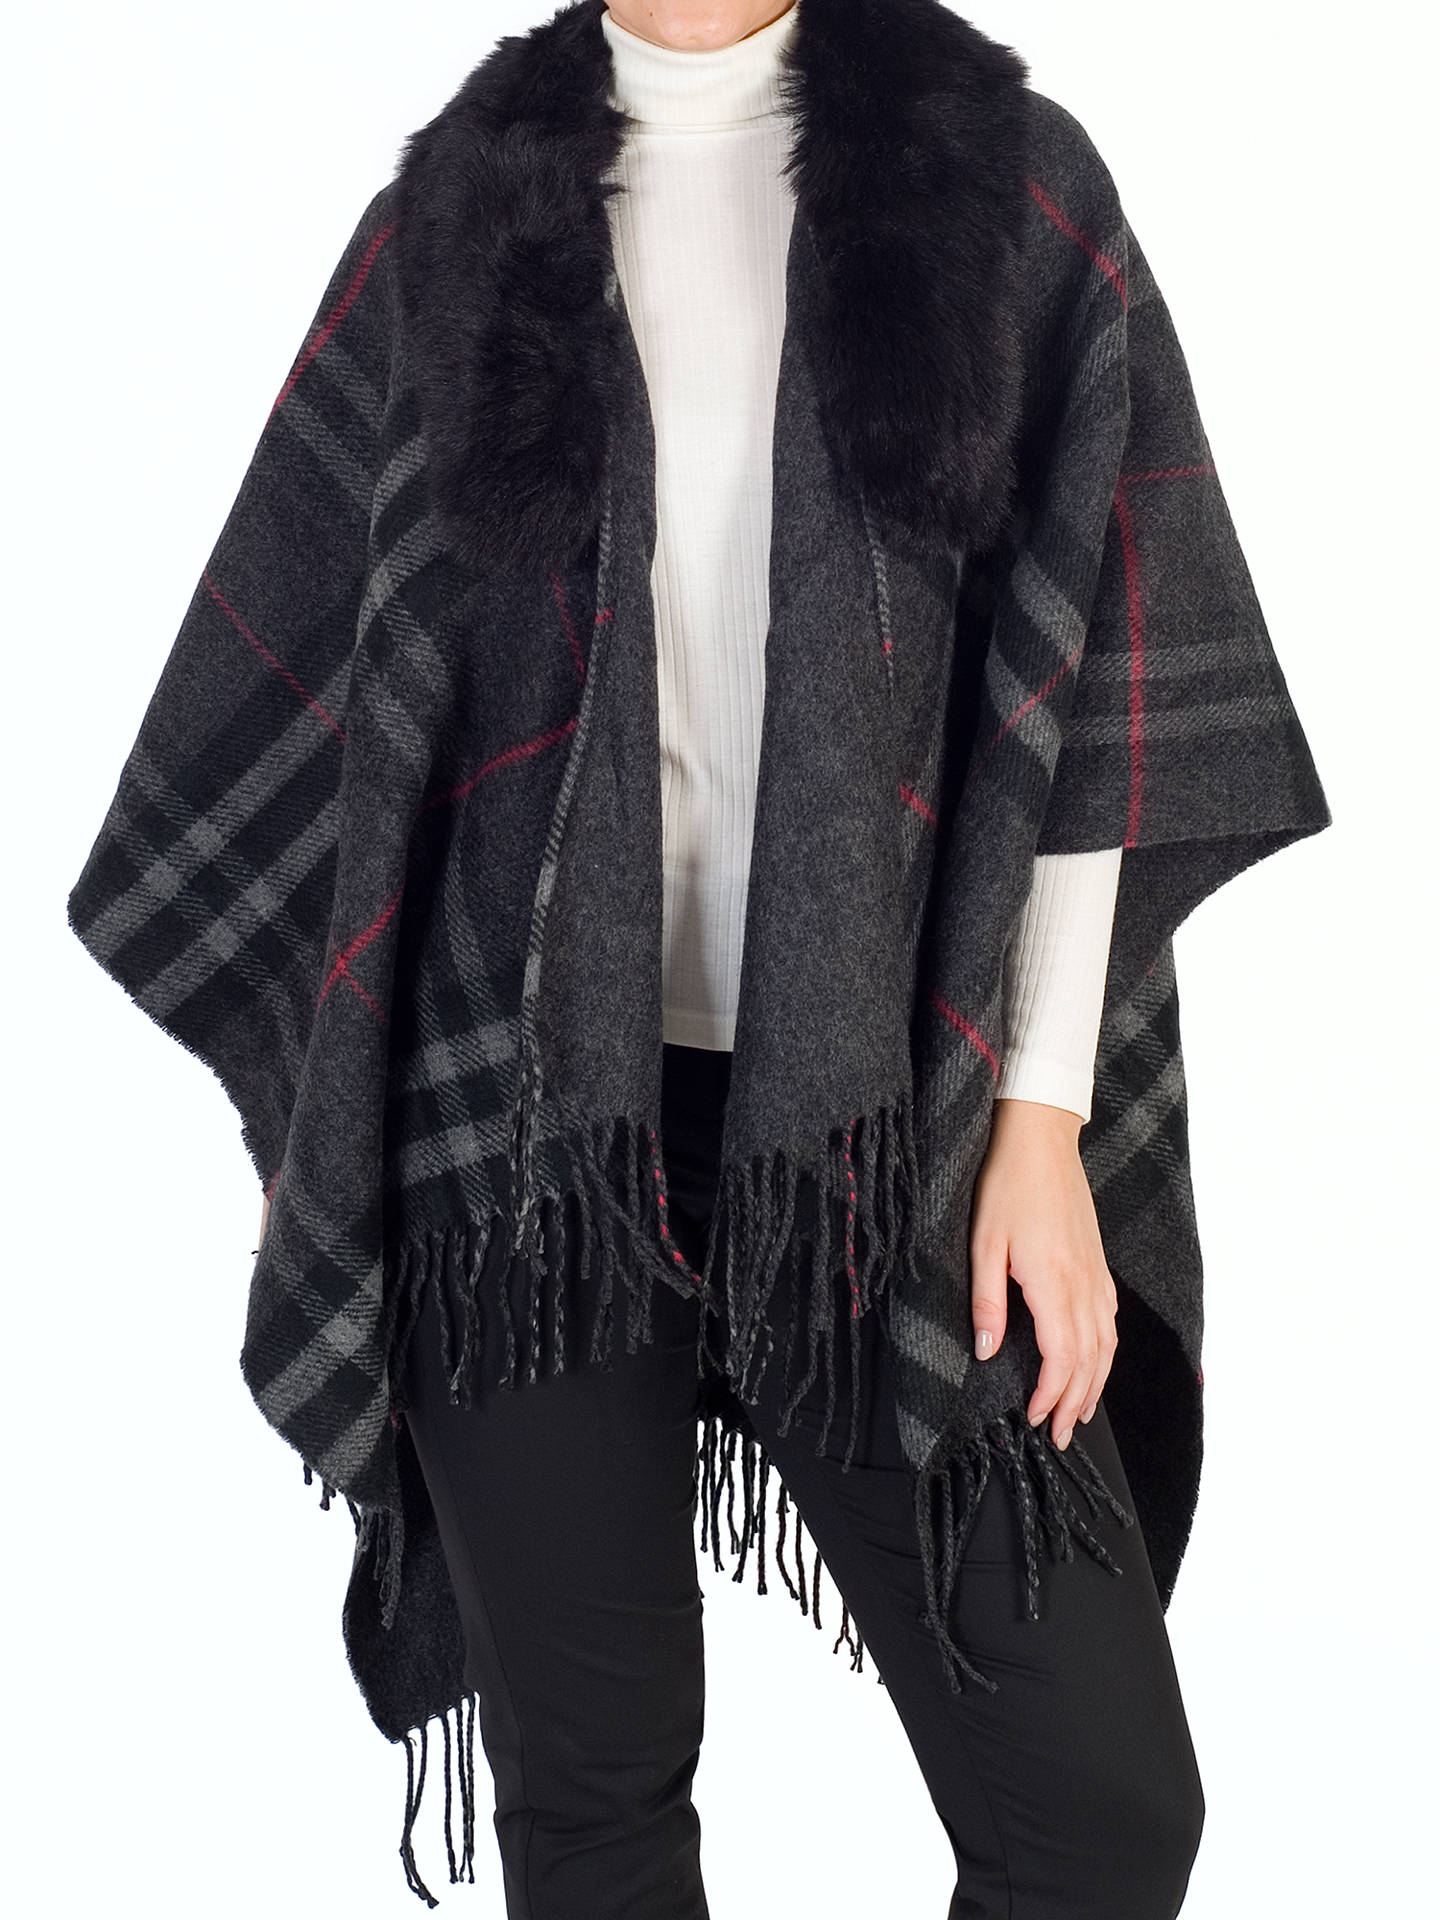 Buychesca Tartan Printed Fur Trim Wrap, Charcoal, One Size Online at johnlewis.com